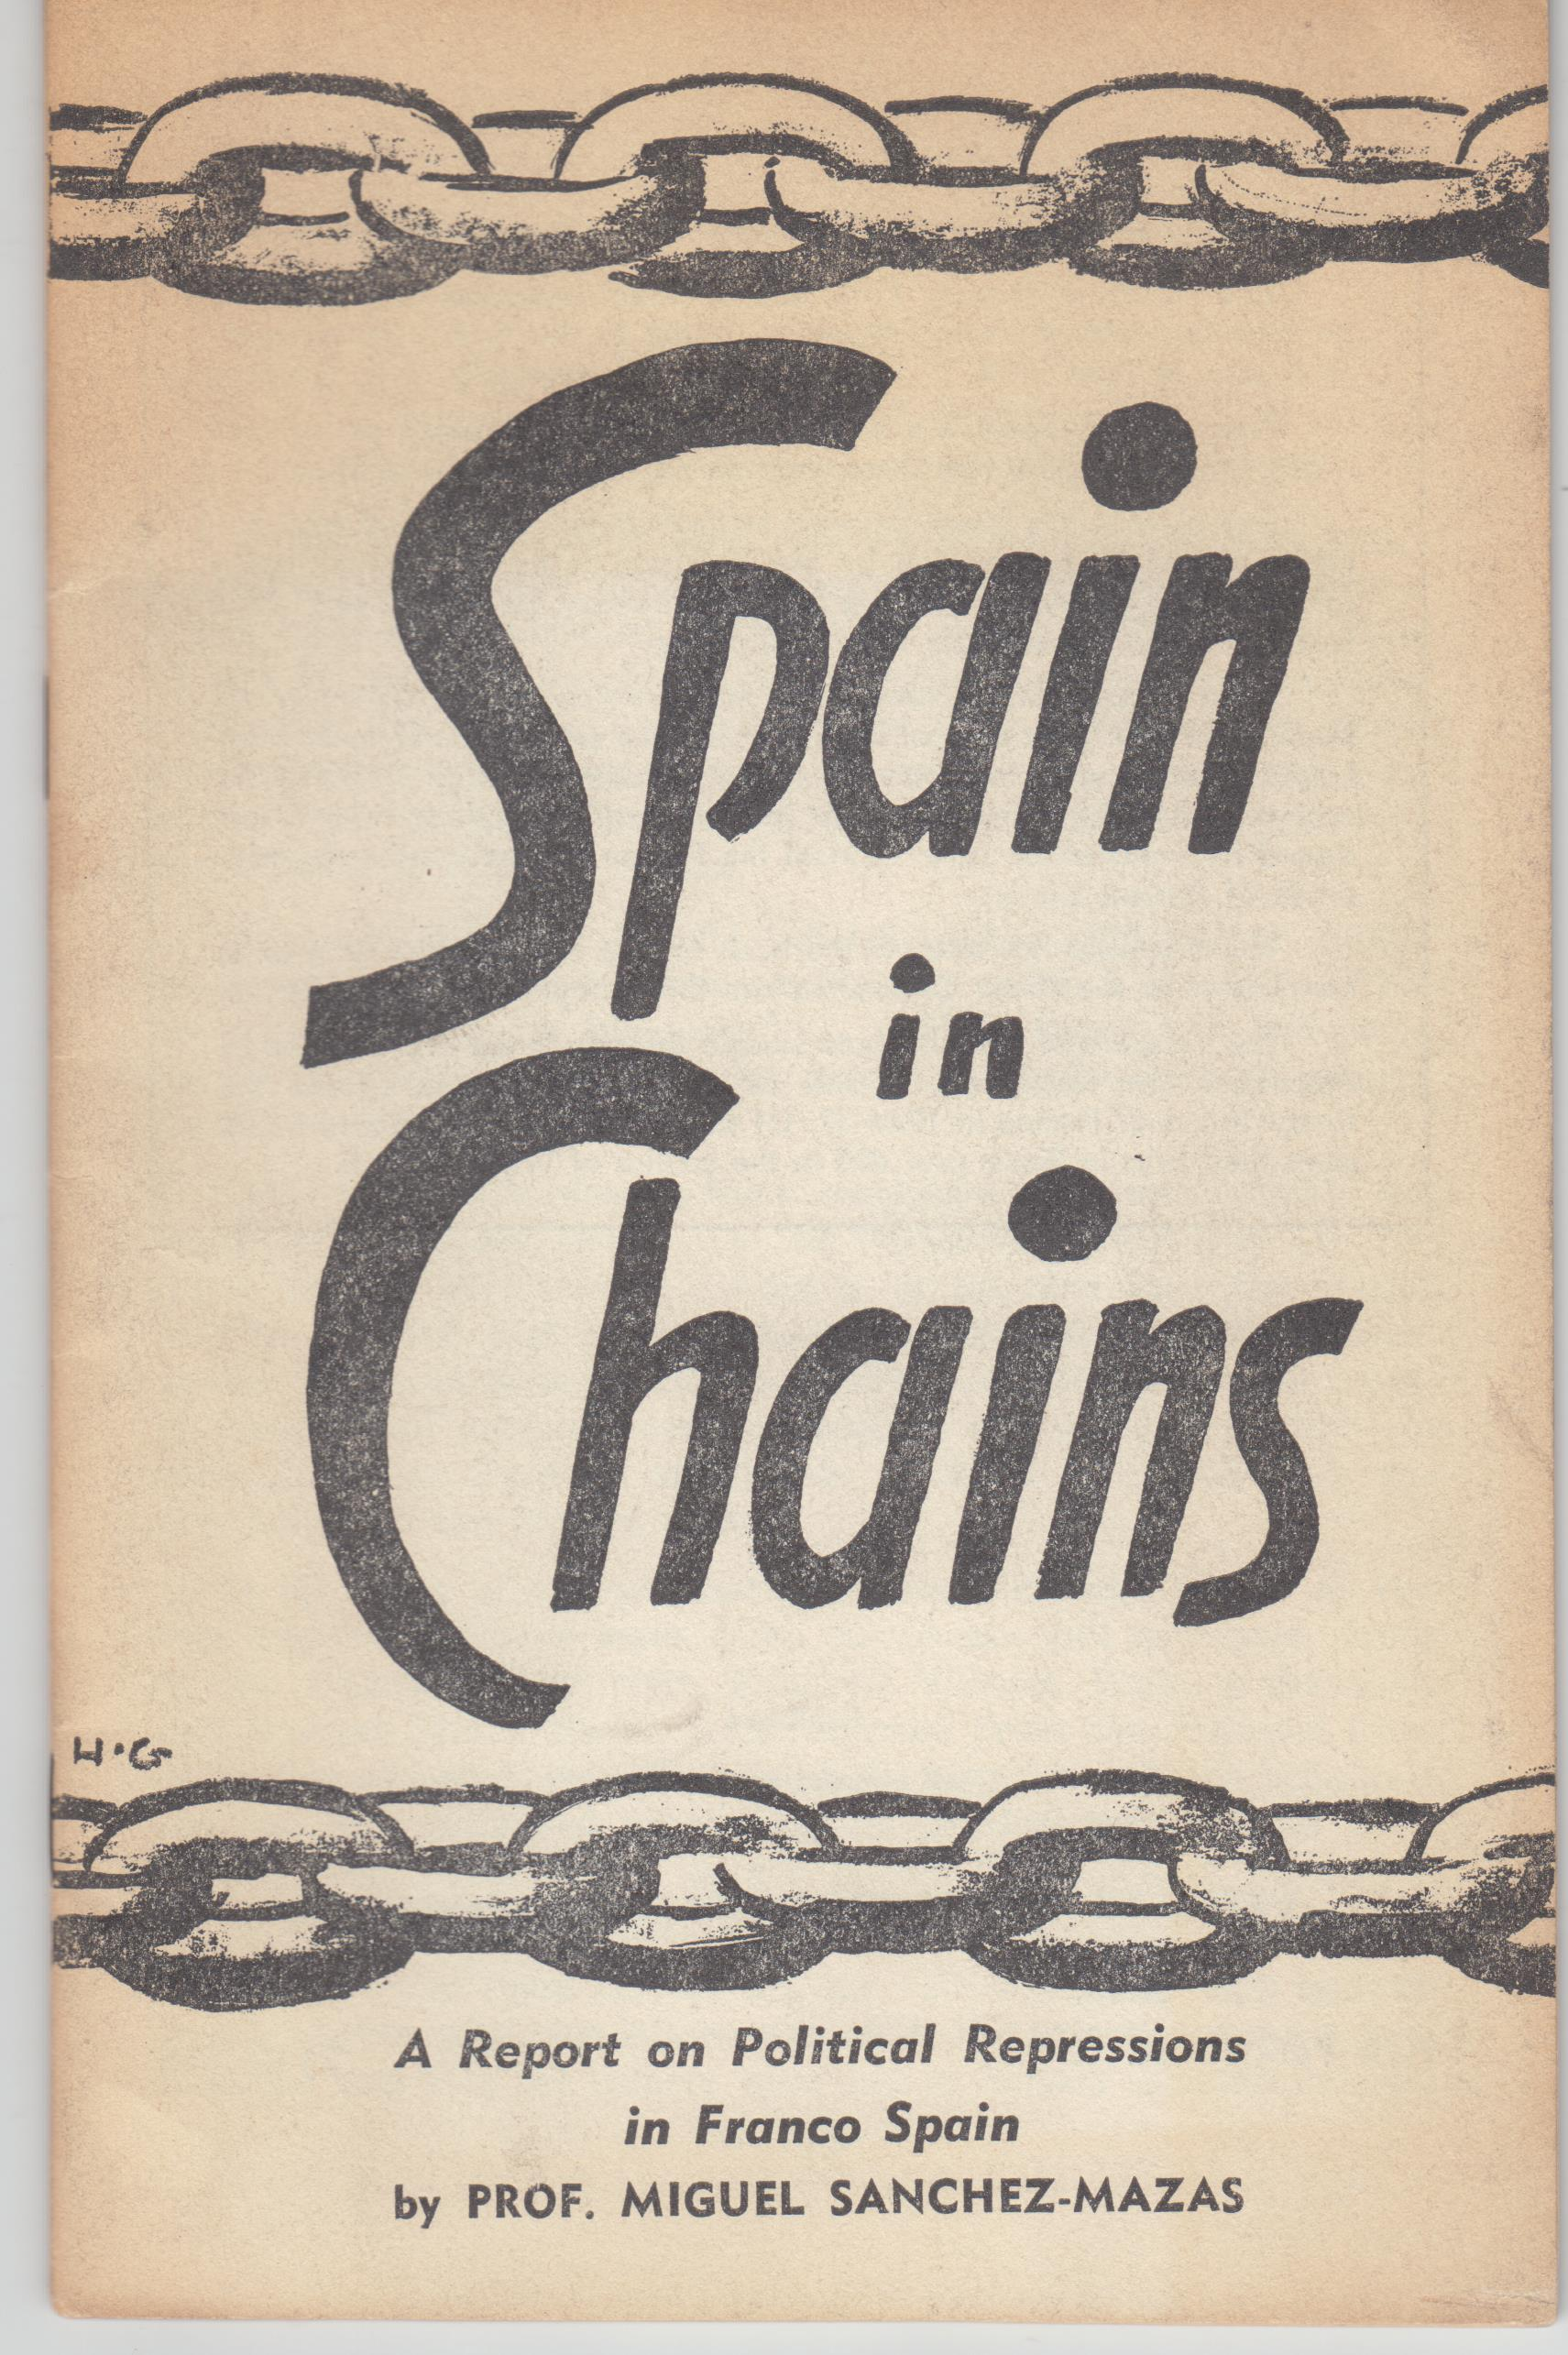 Image for Spain in Chains